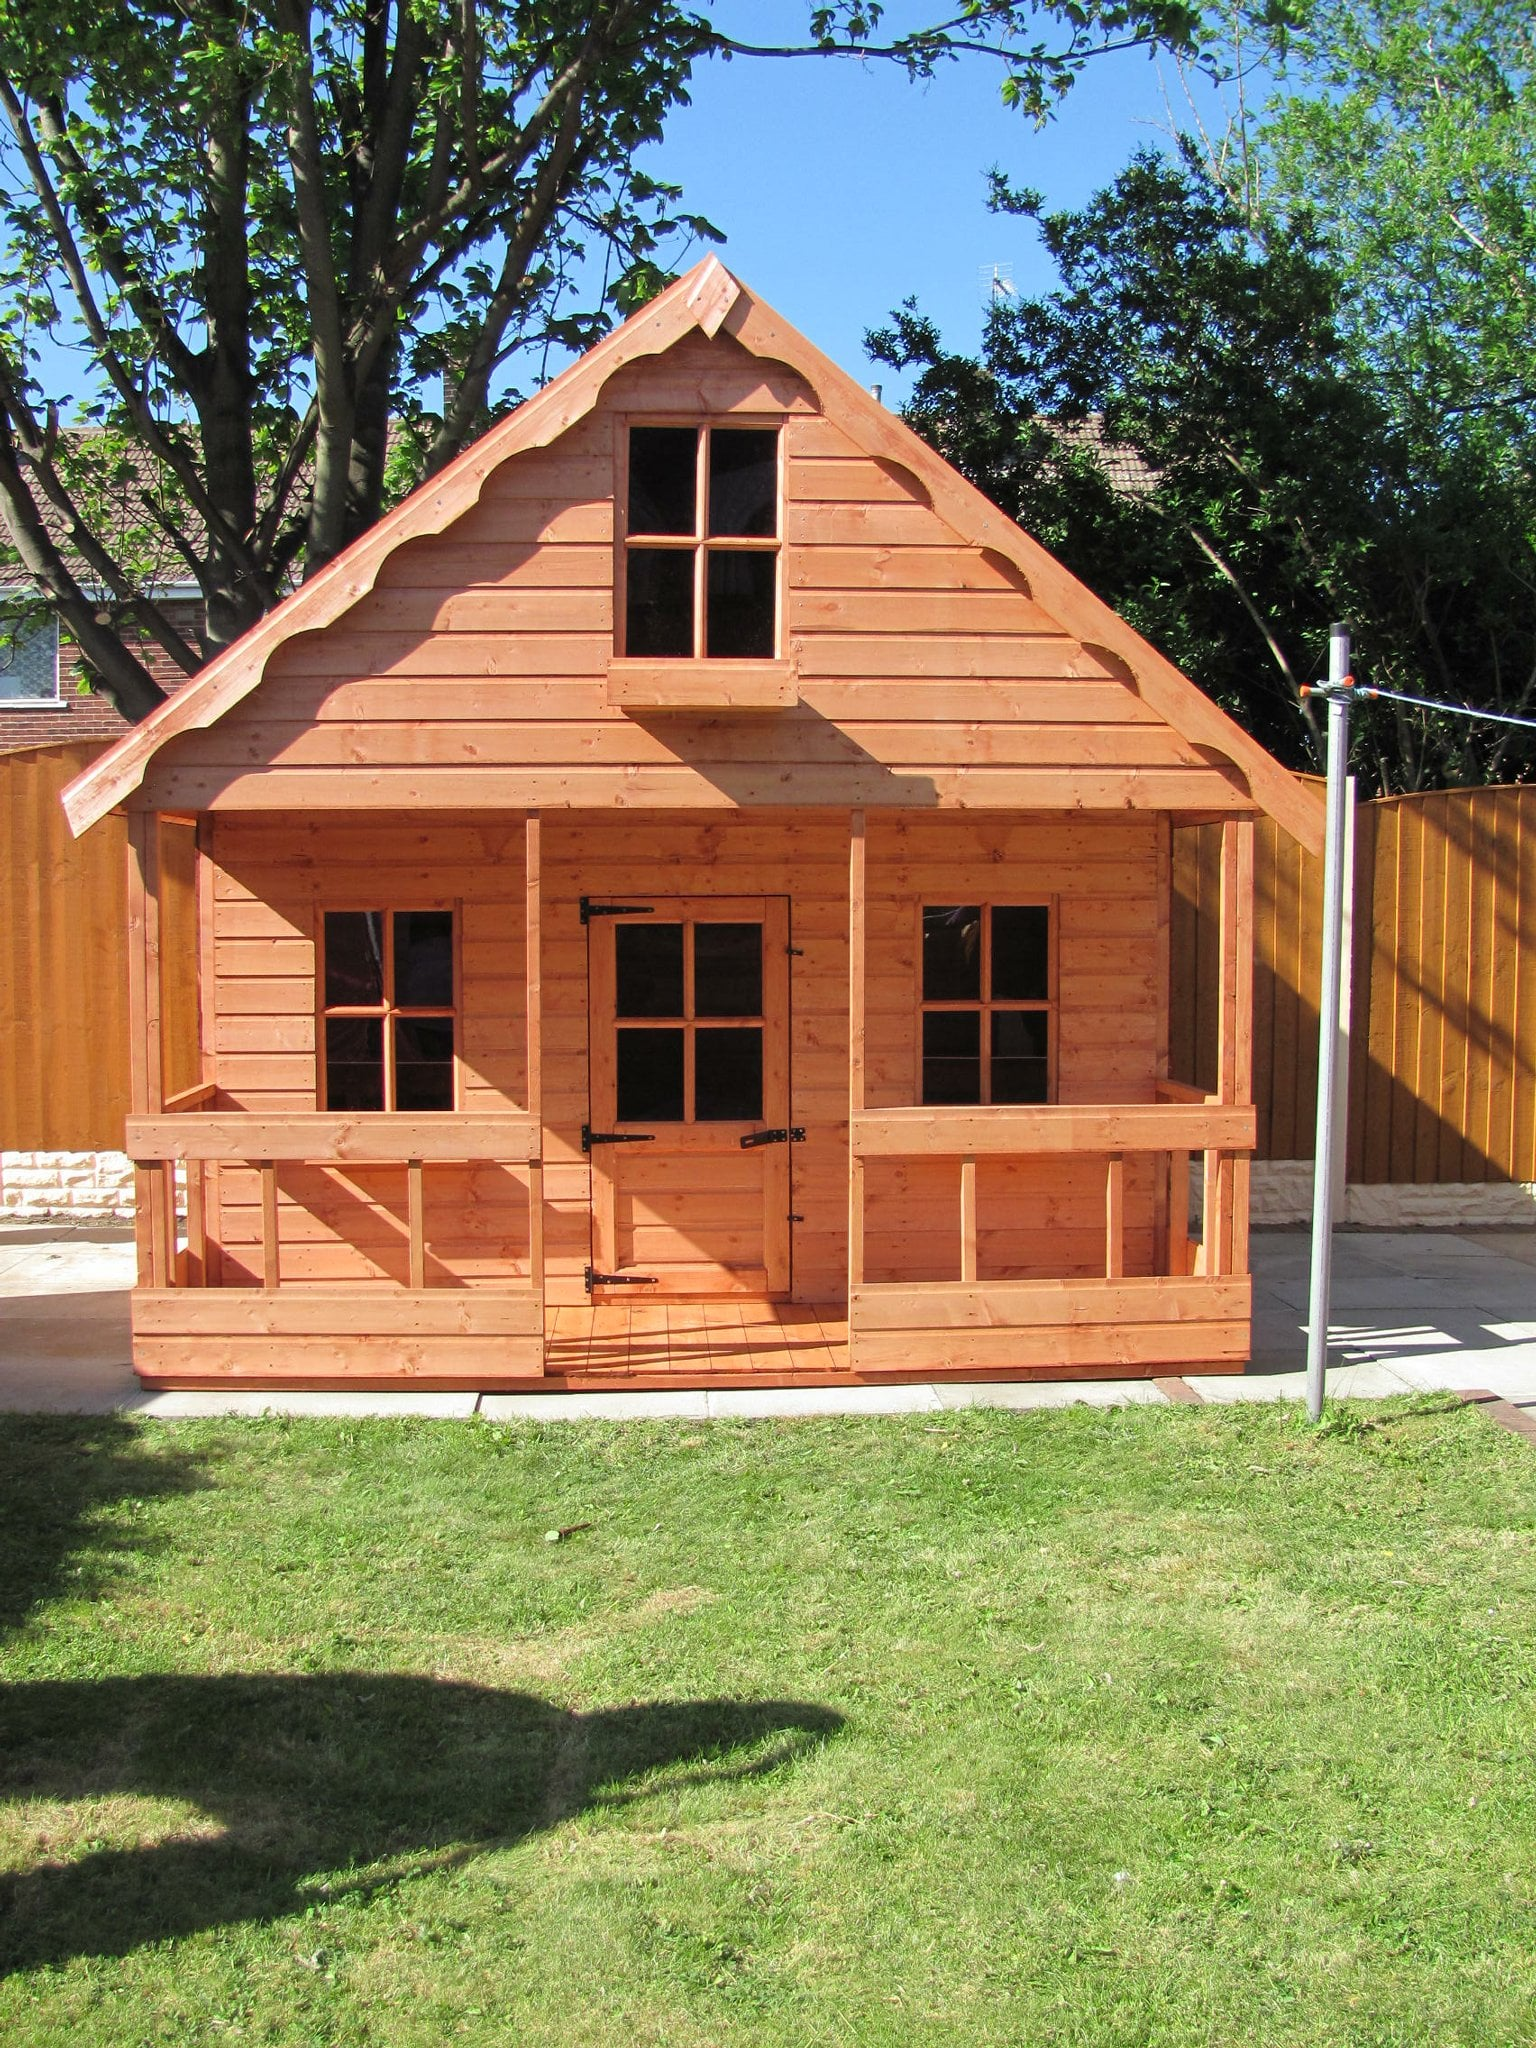 Pretty garden wendy houses uk images landscaping ideas for Garden shed 3x5